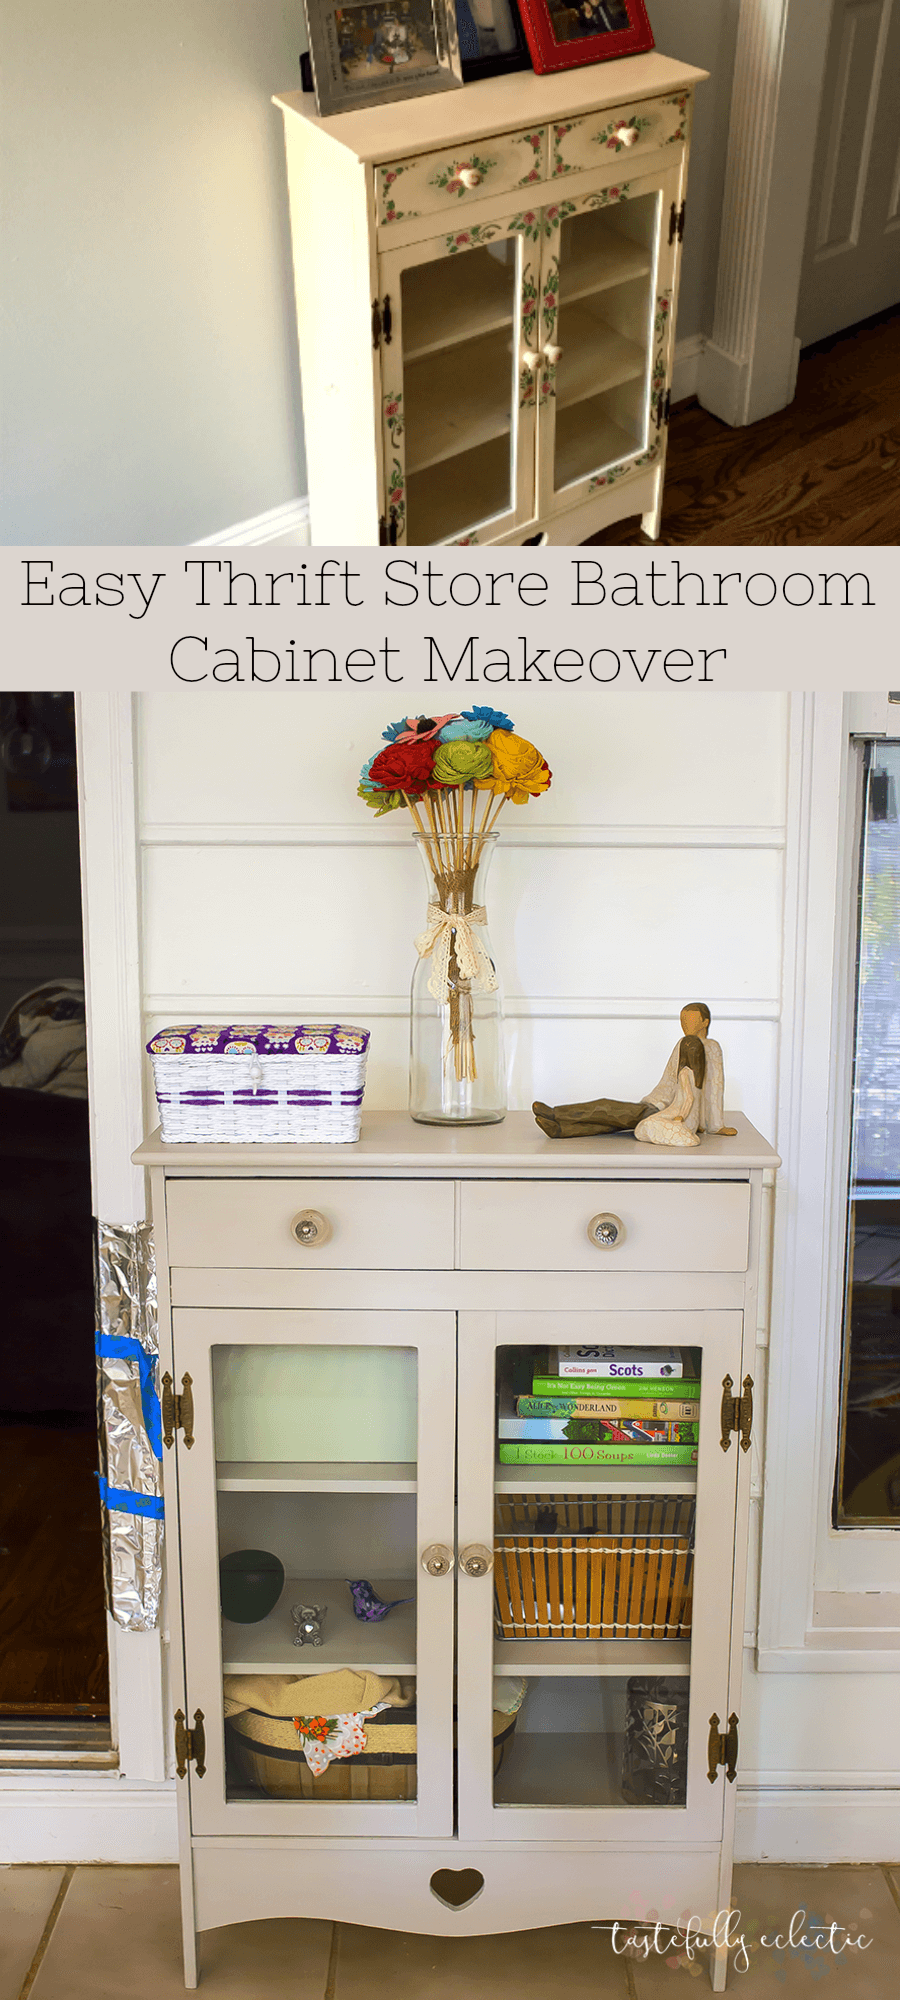 Easy Thrift Store Cabinet Makeover (No Sanding!) - Tastefully Eclectic